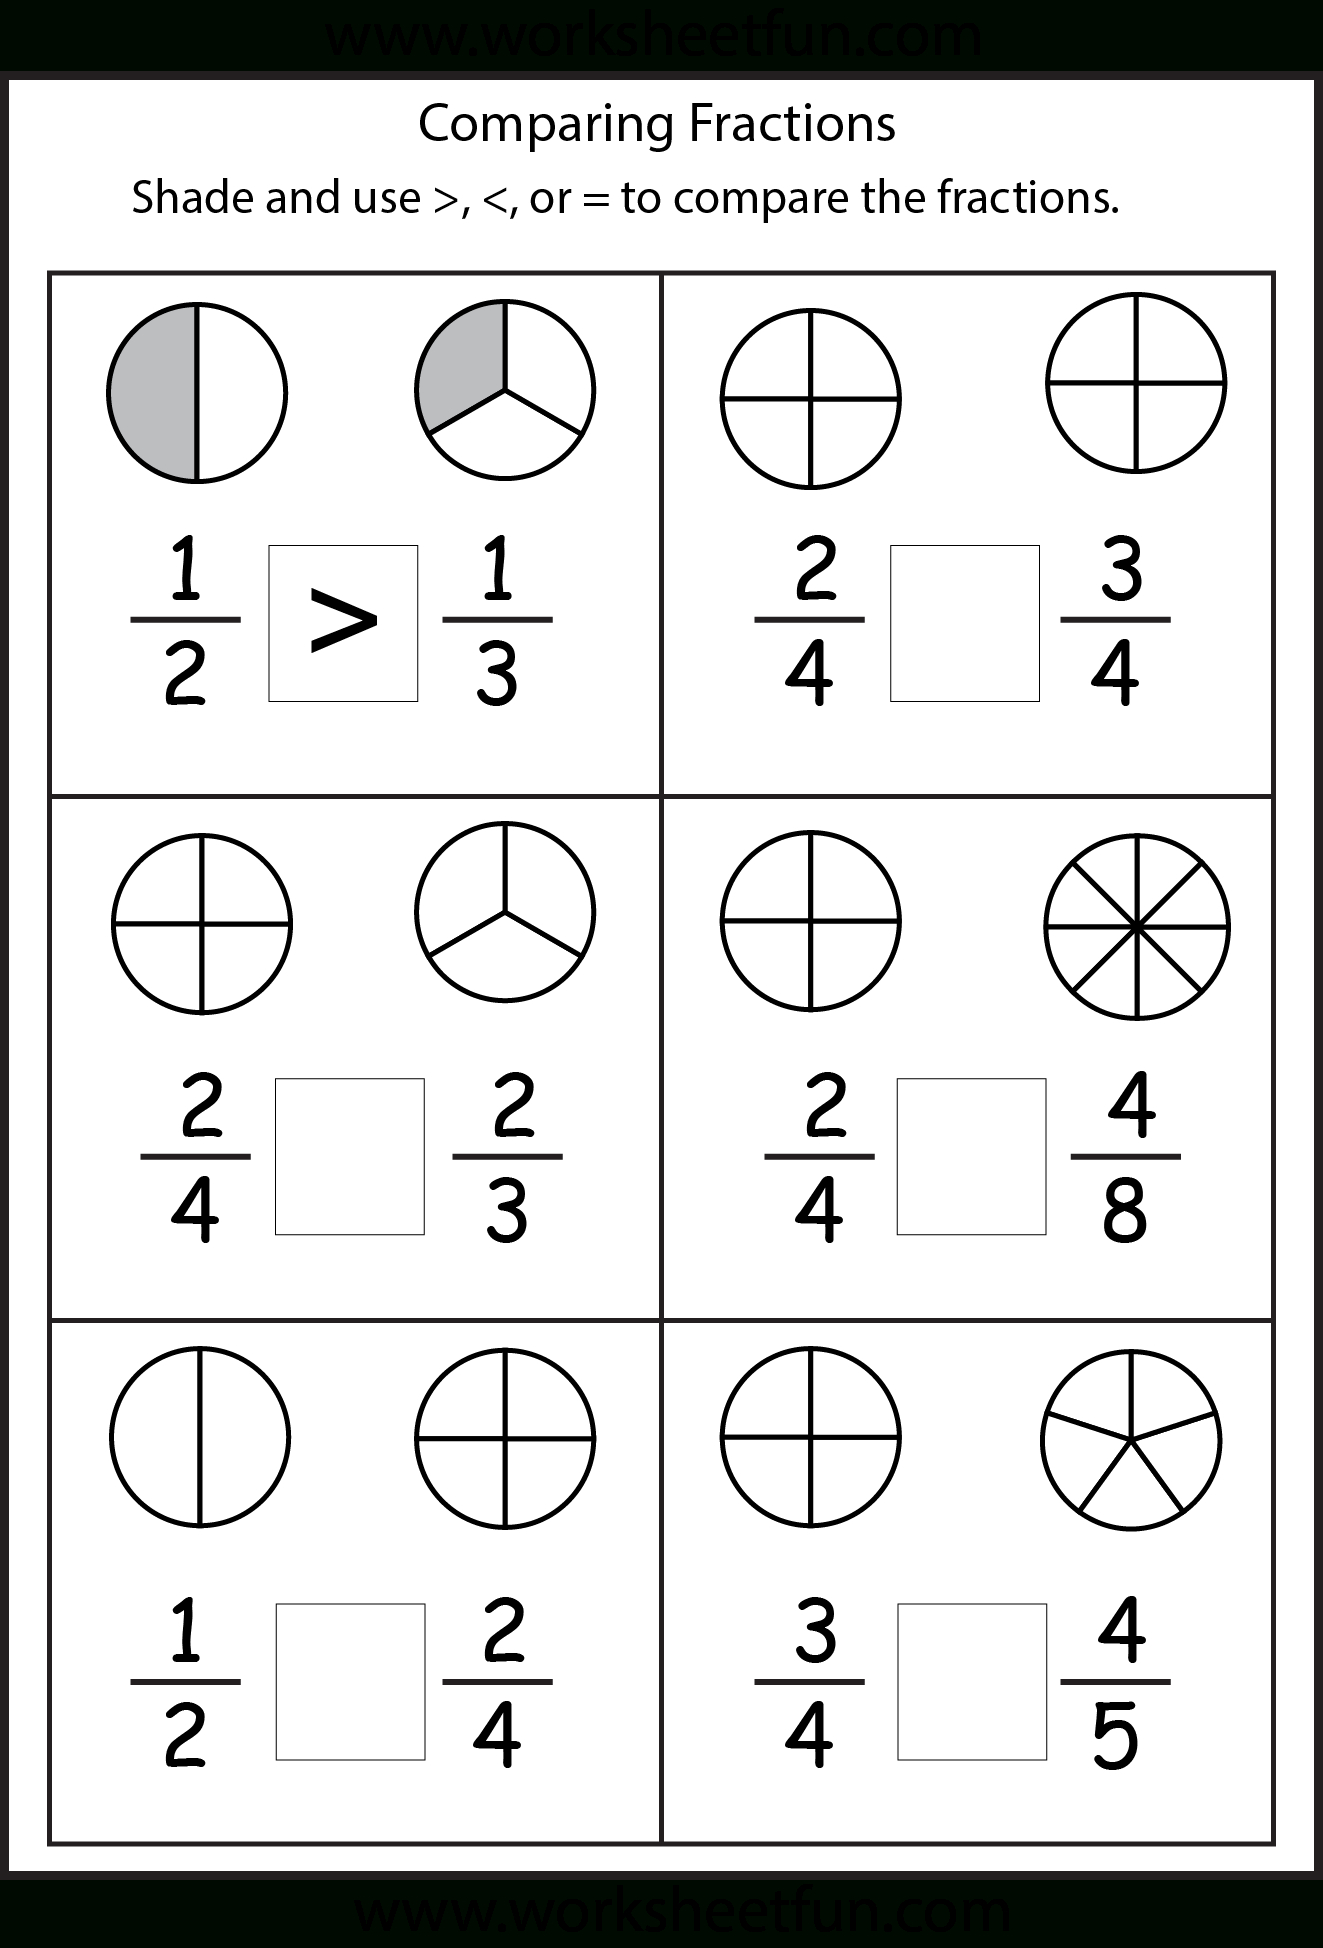 Comparing Fractions Worksheets | Math | 2Nd Grade Math Worksheets - Free Printable Common Core Math Worksheets For Third Grade